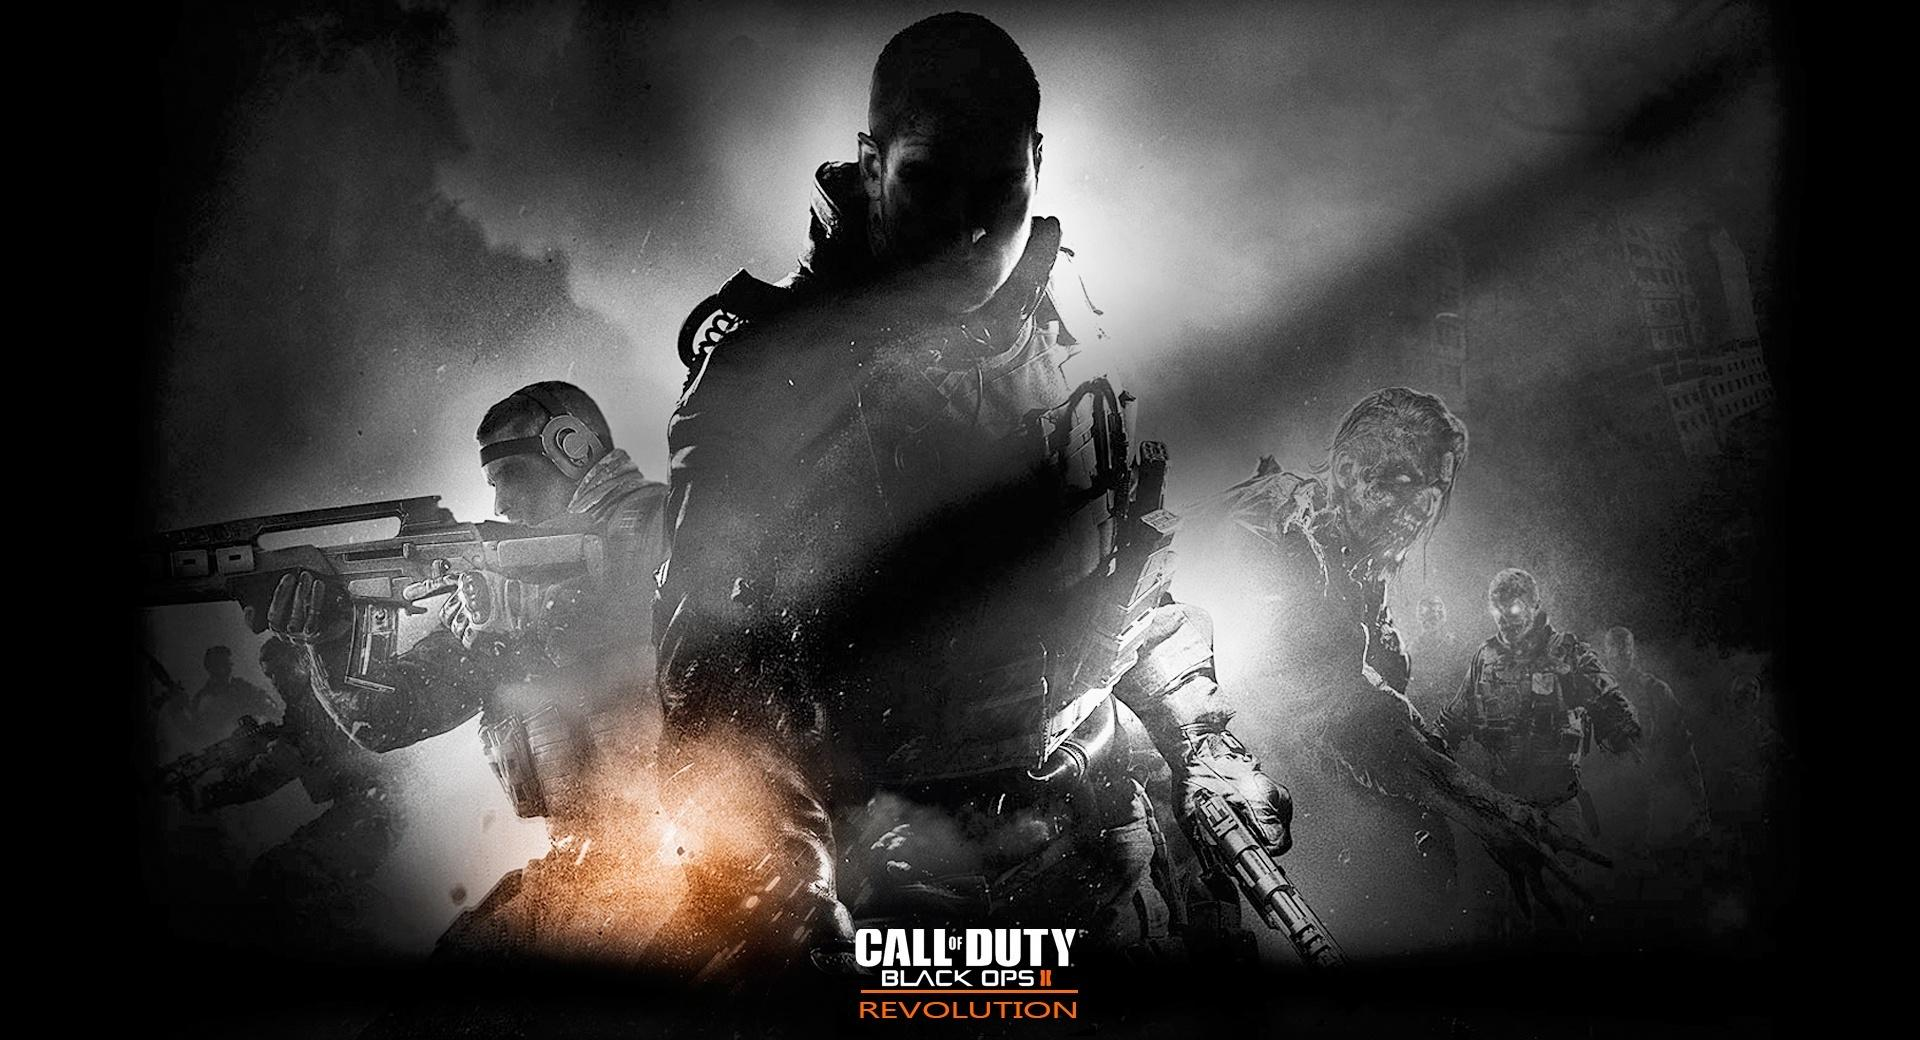 Call Of Duty Black Ops 2 Revolution wallpapers HD quality